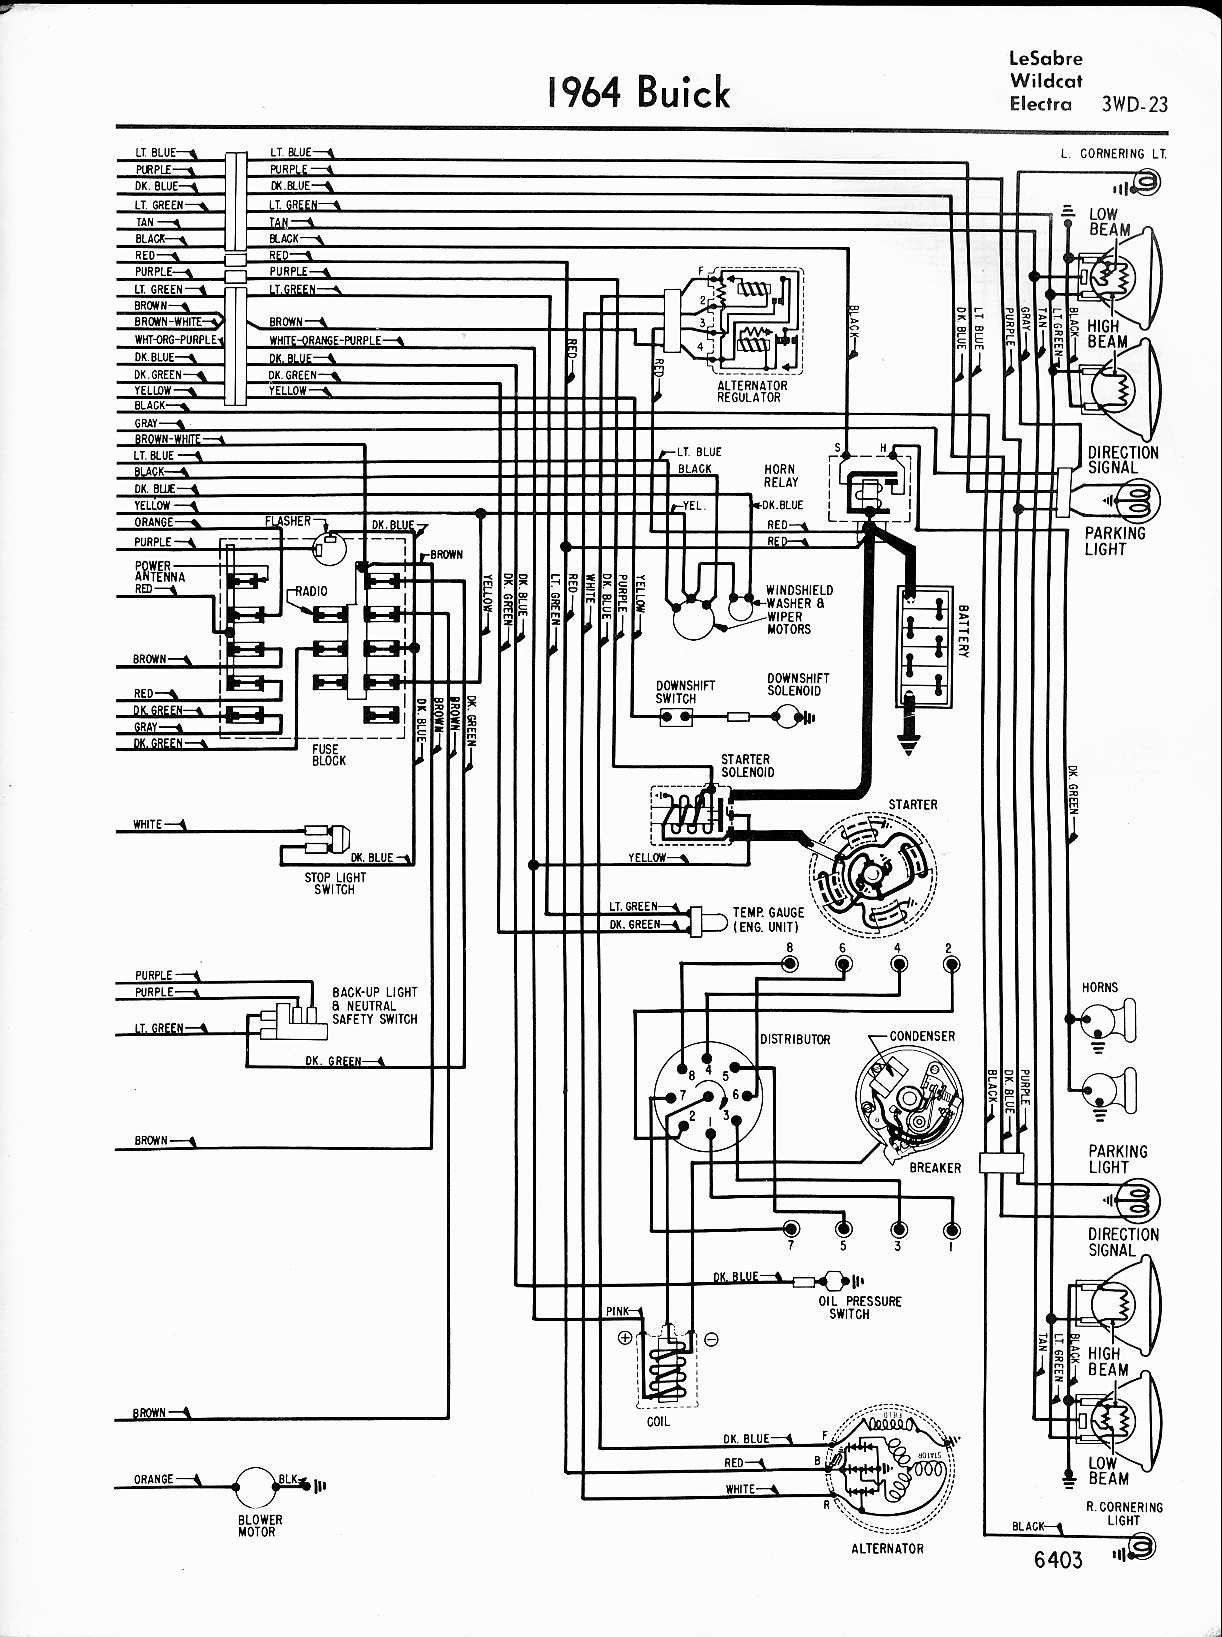 Infiniti Q45 Engine Diagram 97 Infiniti Q45 Alternator Archives Joescablecar Of Infiniti Q45 Engine Diagram